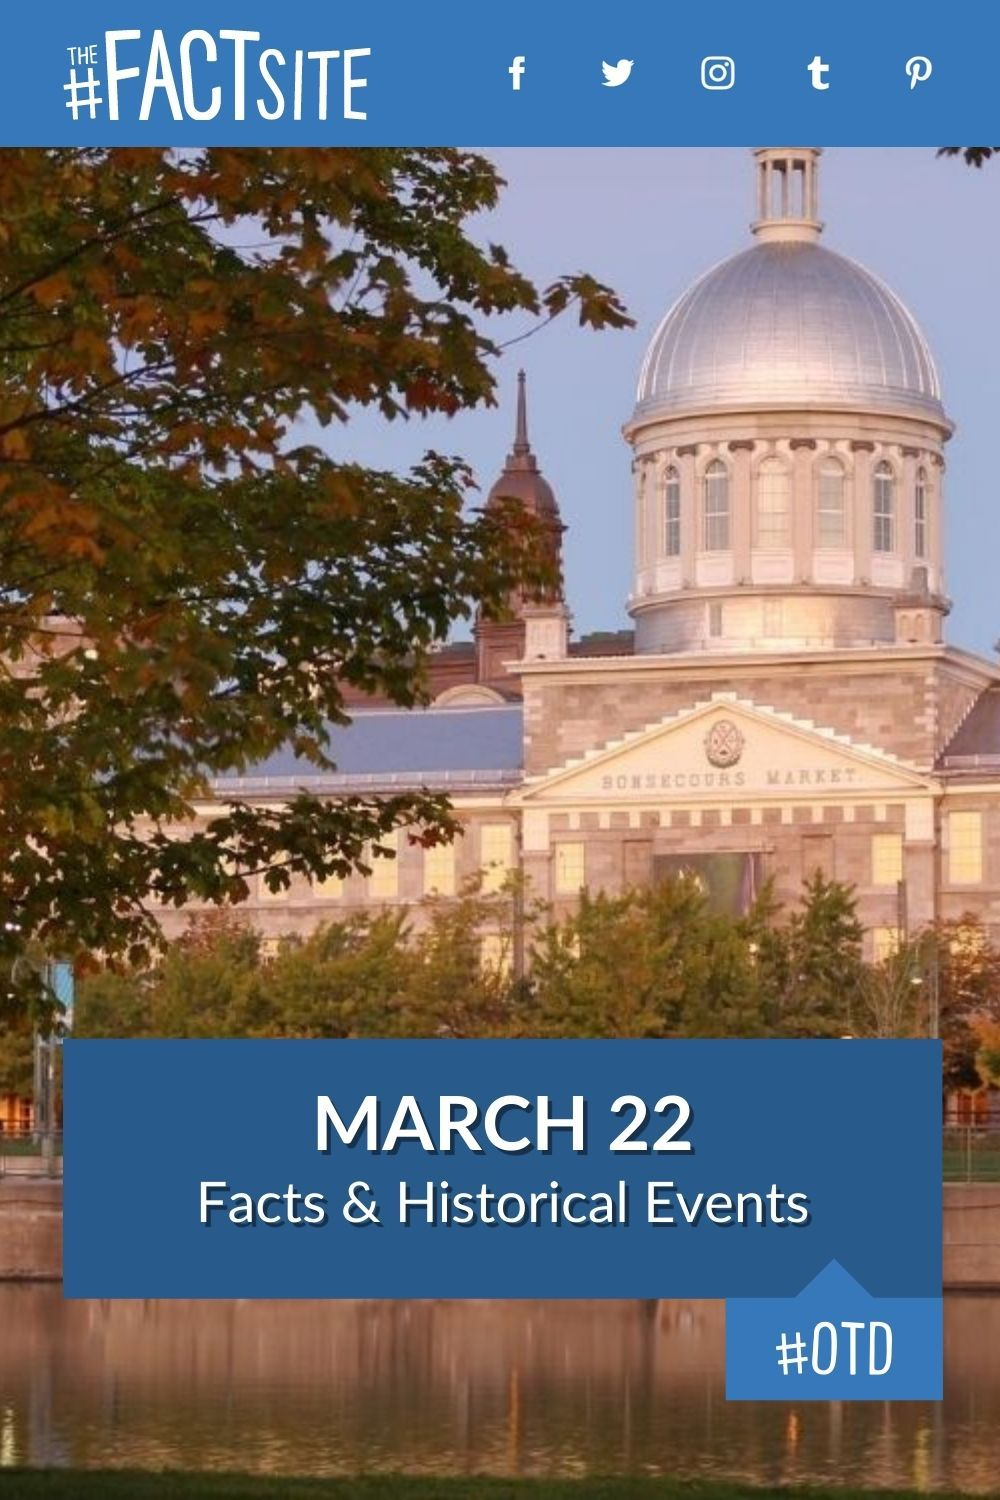 Facts & Historic Events That Happened on March 22